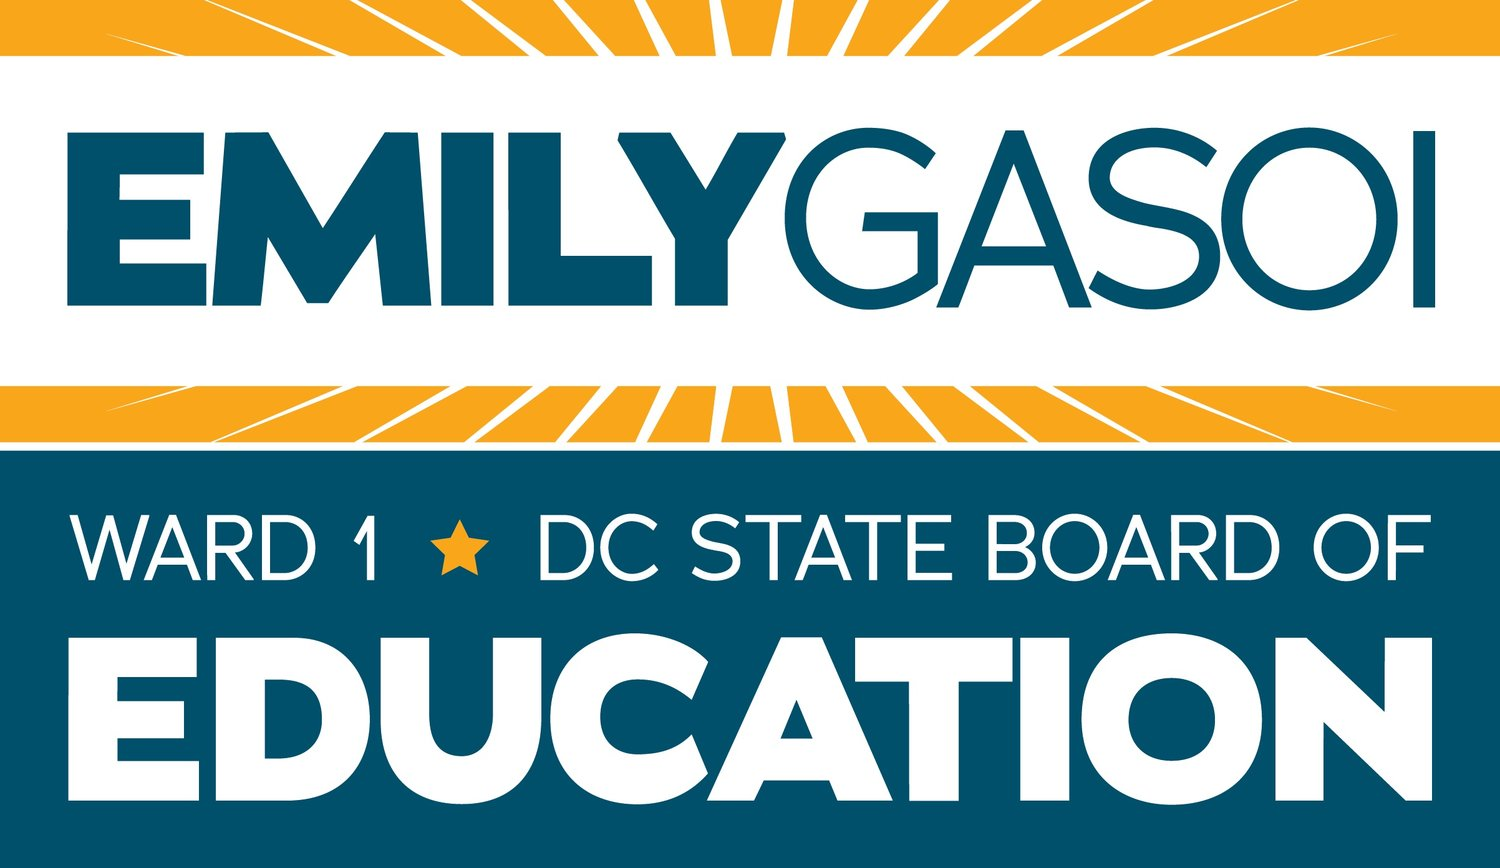 Emily Gasoi for DC State Board of Education Ward 1